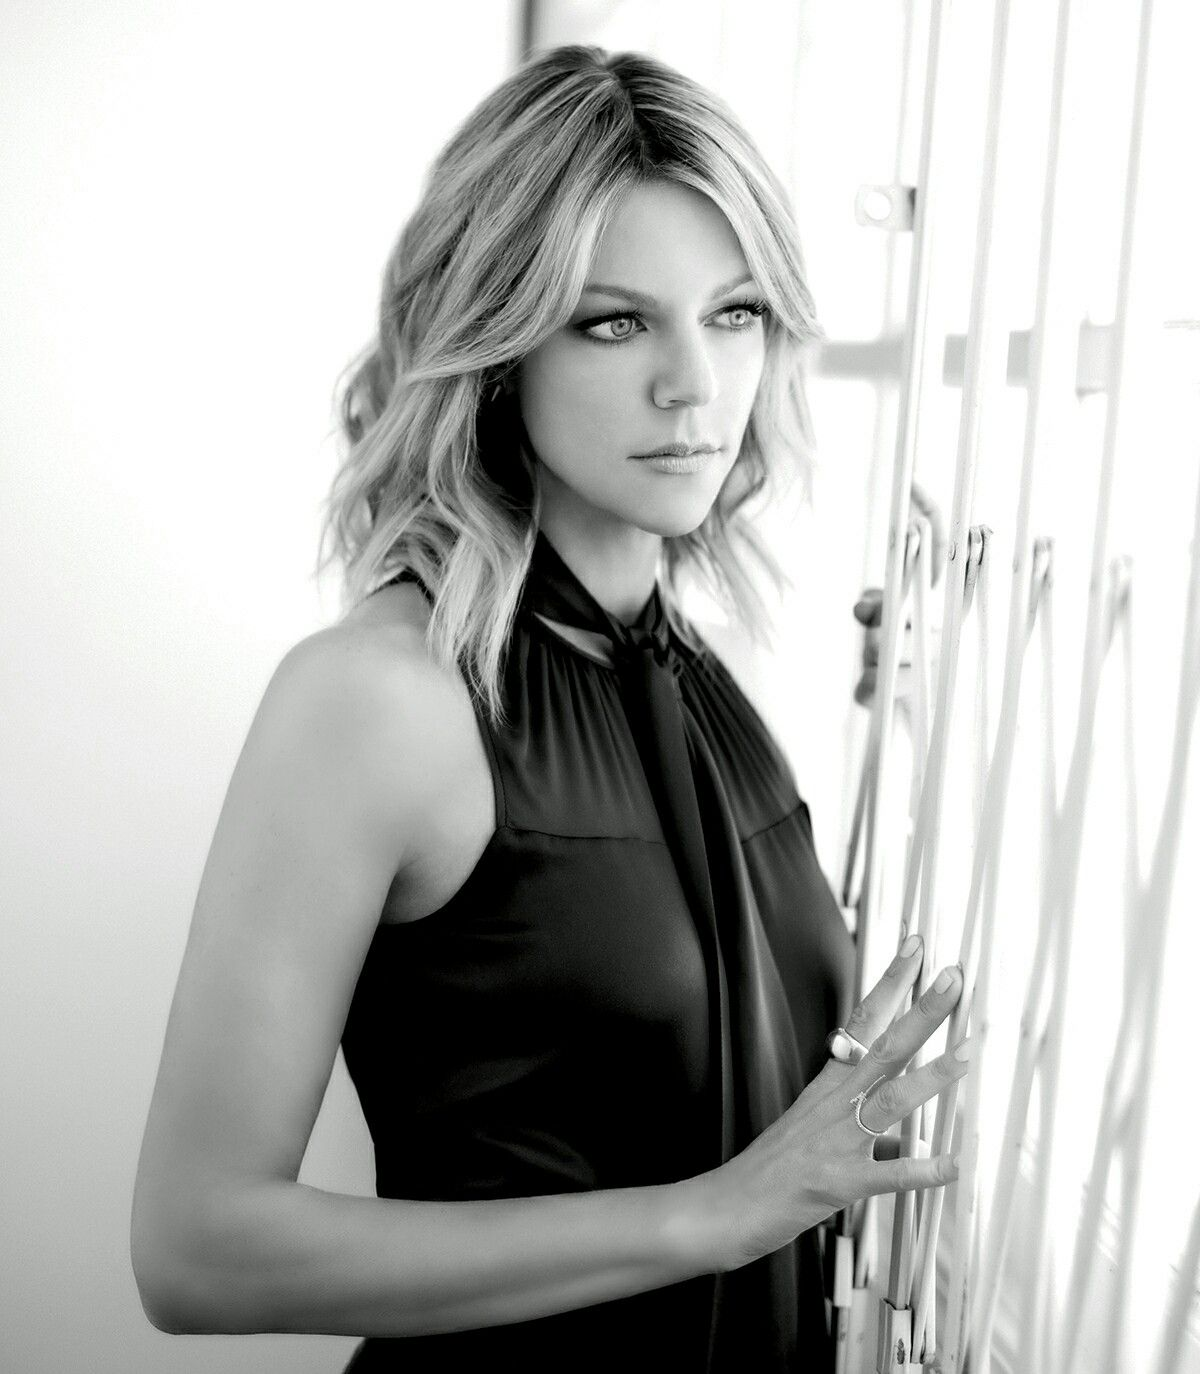 Kaitlin Willow Olson is an American actress known for her roles as ...